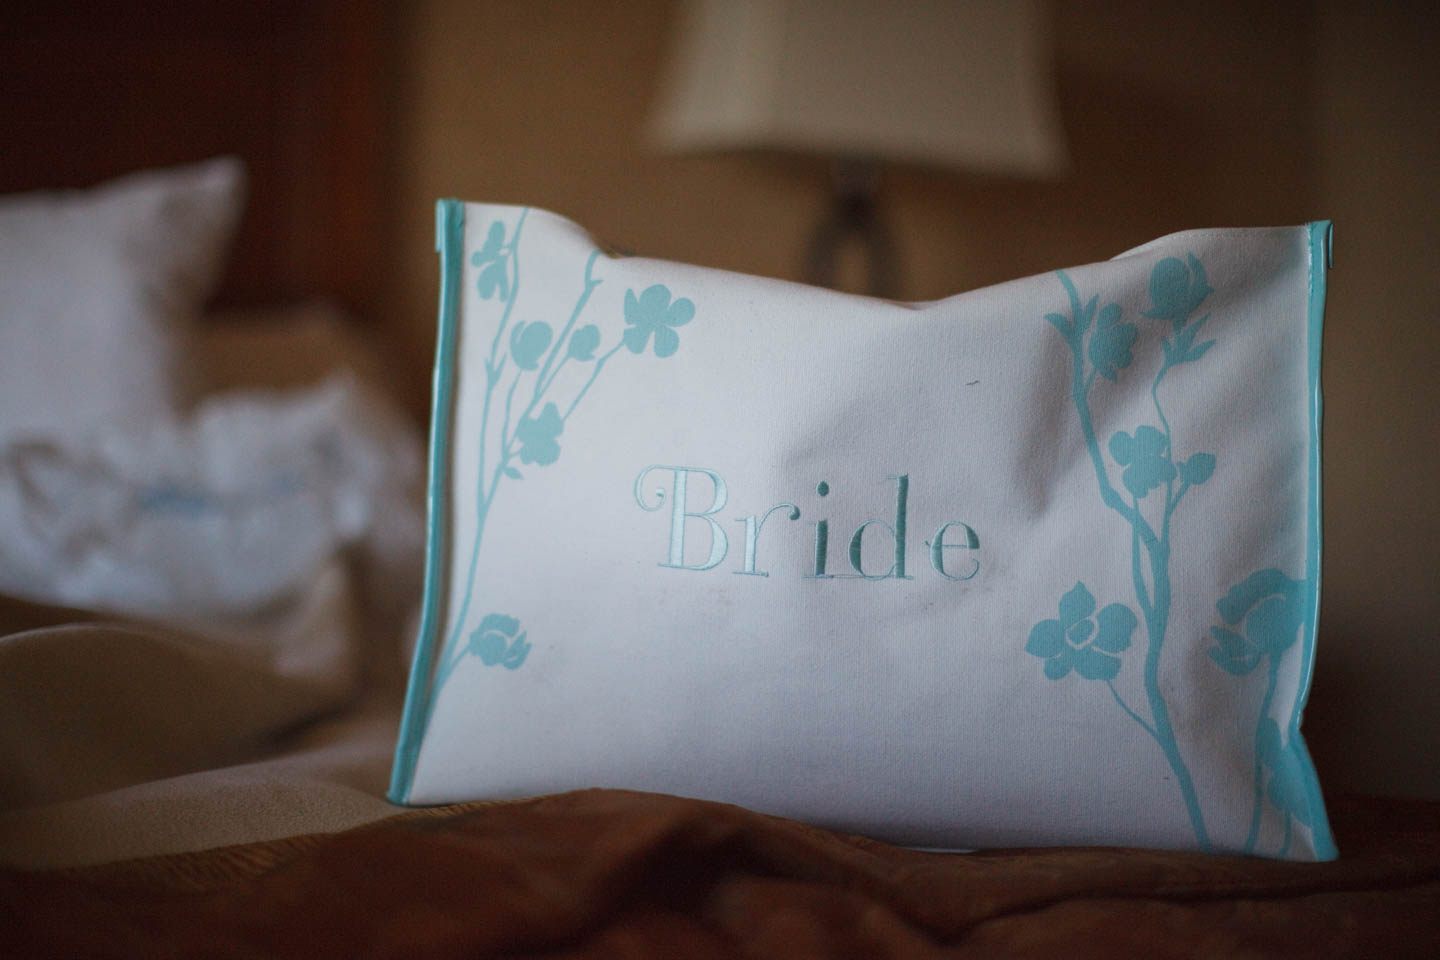 Bride's makeup bag